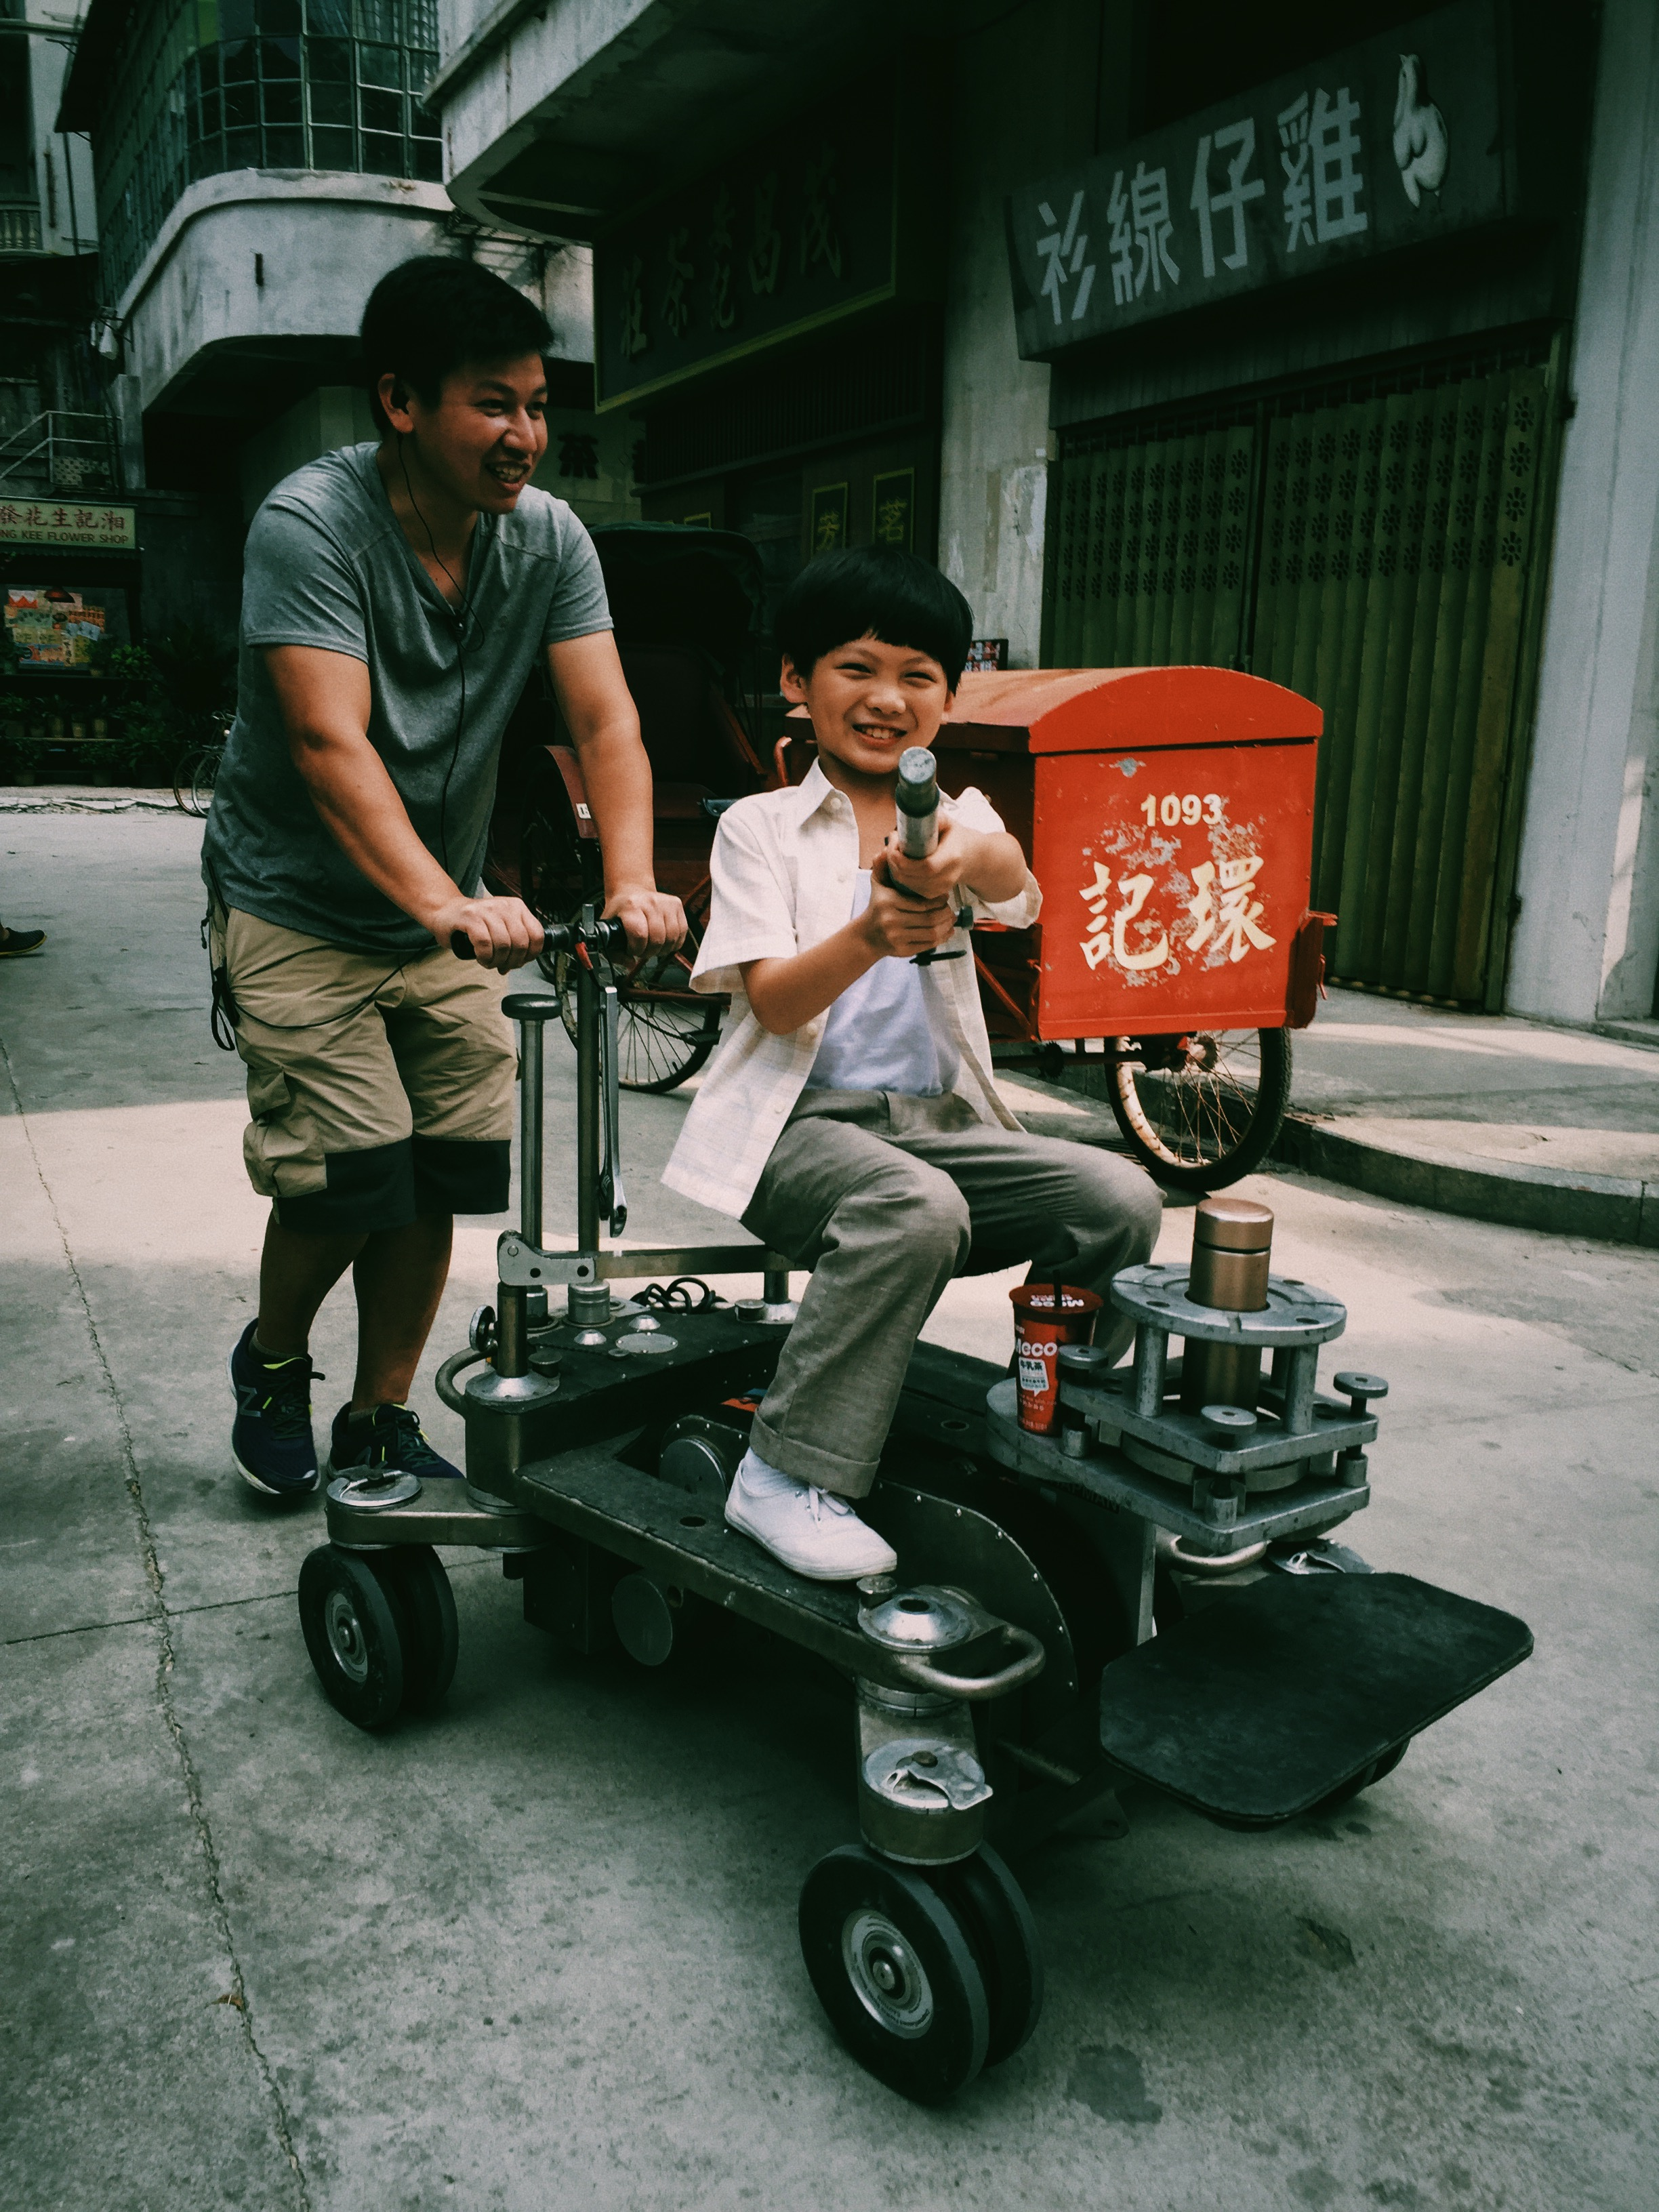 Fengge and Dolly grip A-Kang